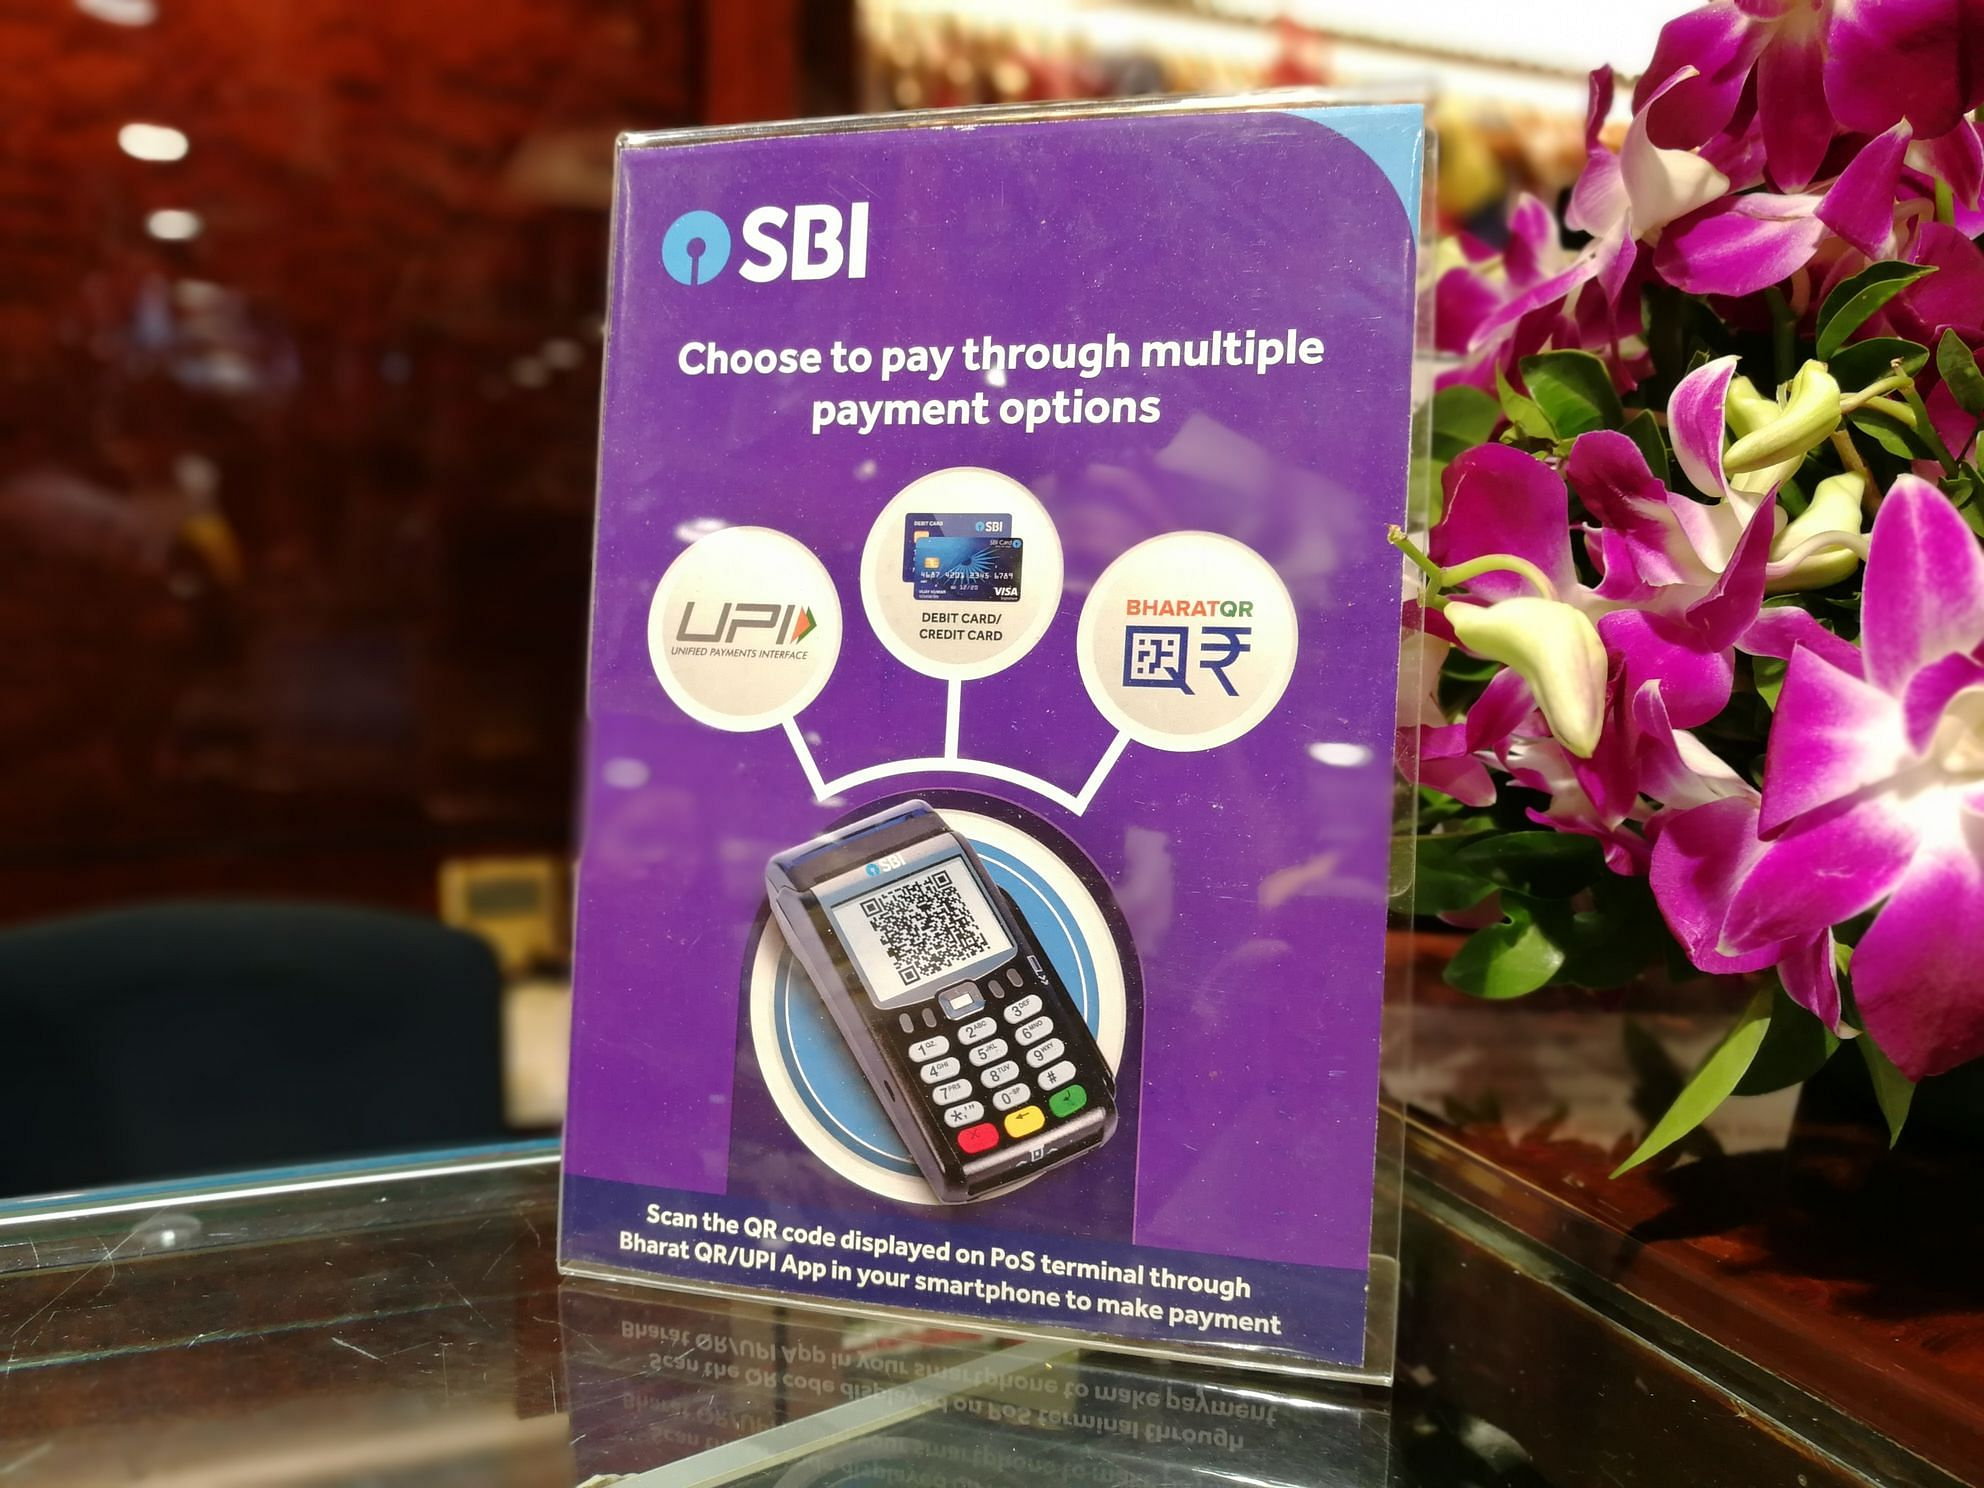 SBI launches multi-option payment device, looks to